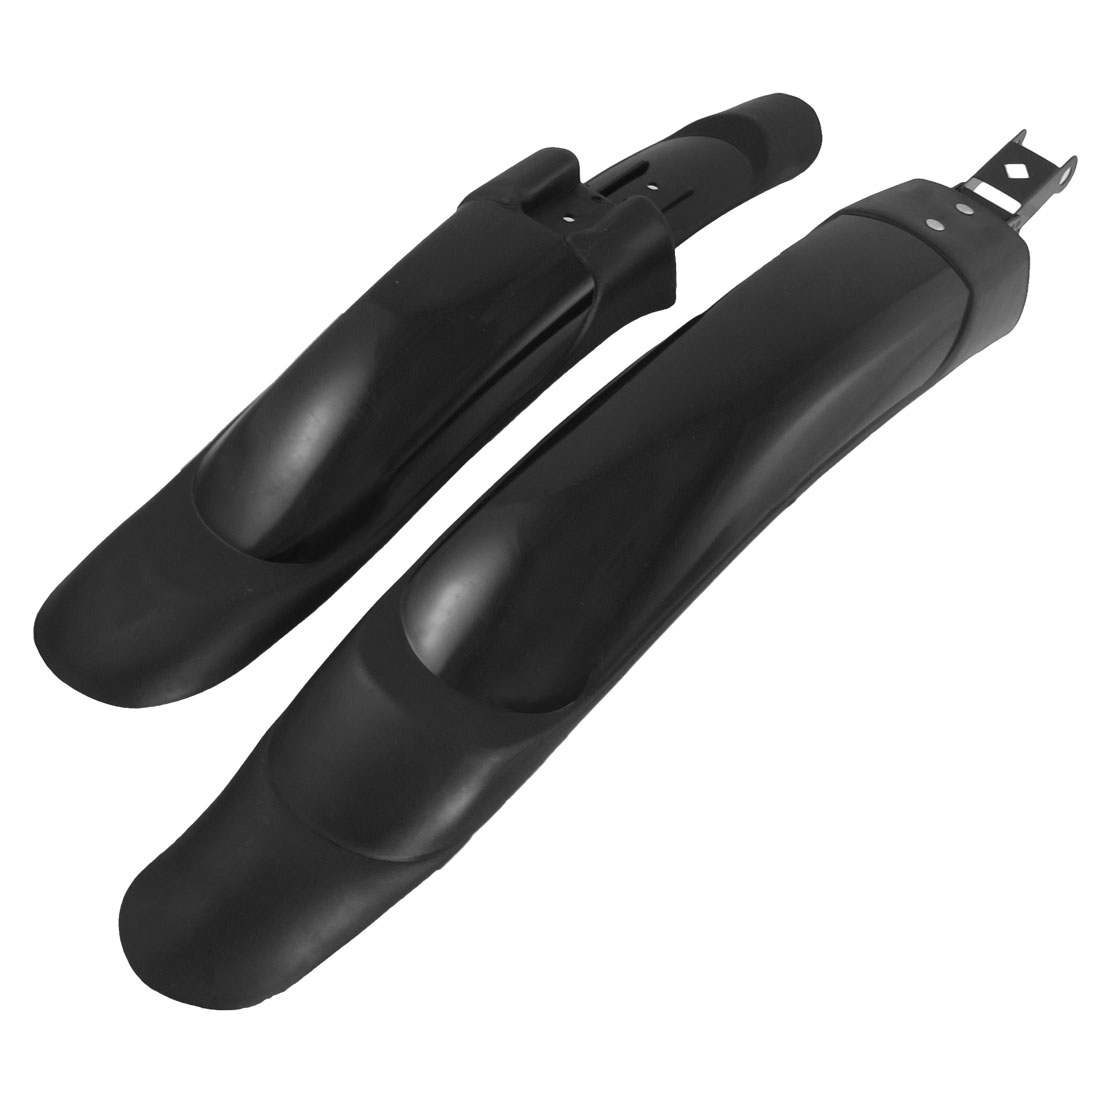 Metal Plastic Front Rear Mudguard Fender Black for Mountain Bike Cycling